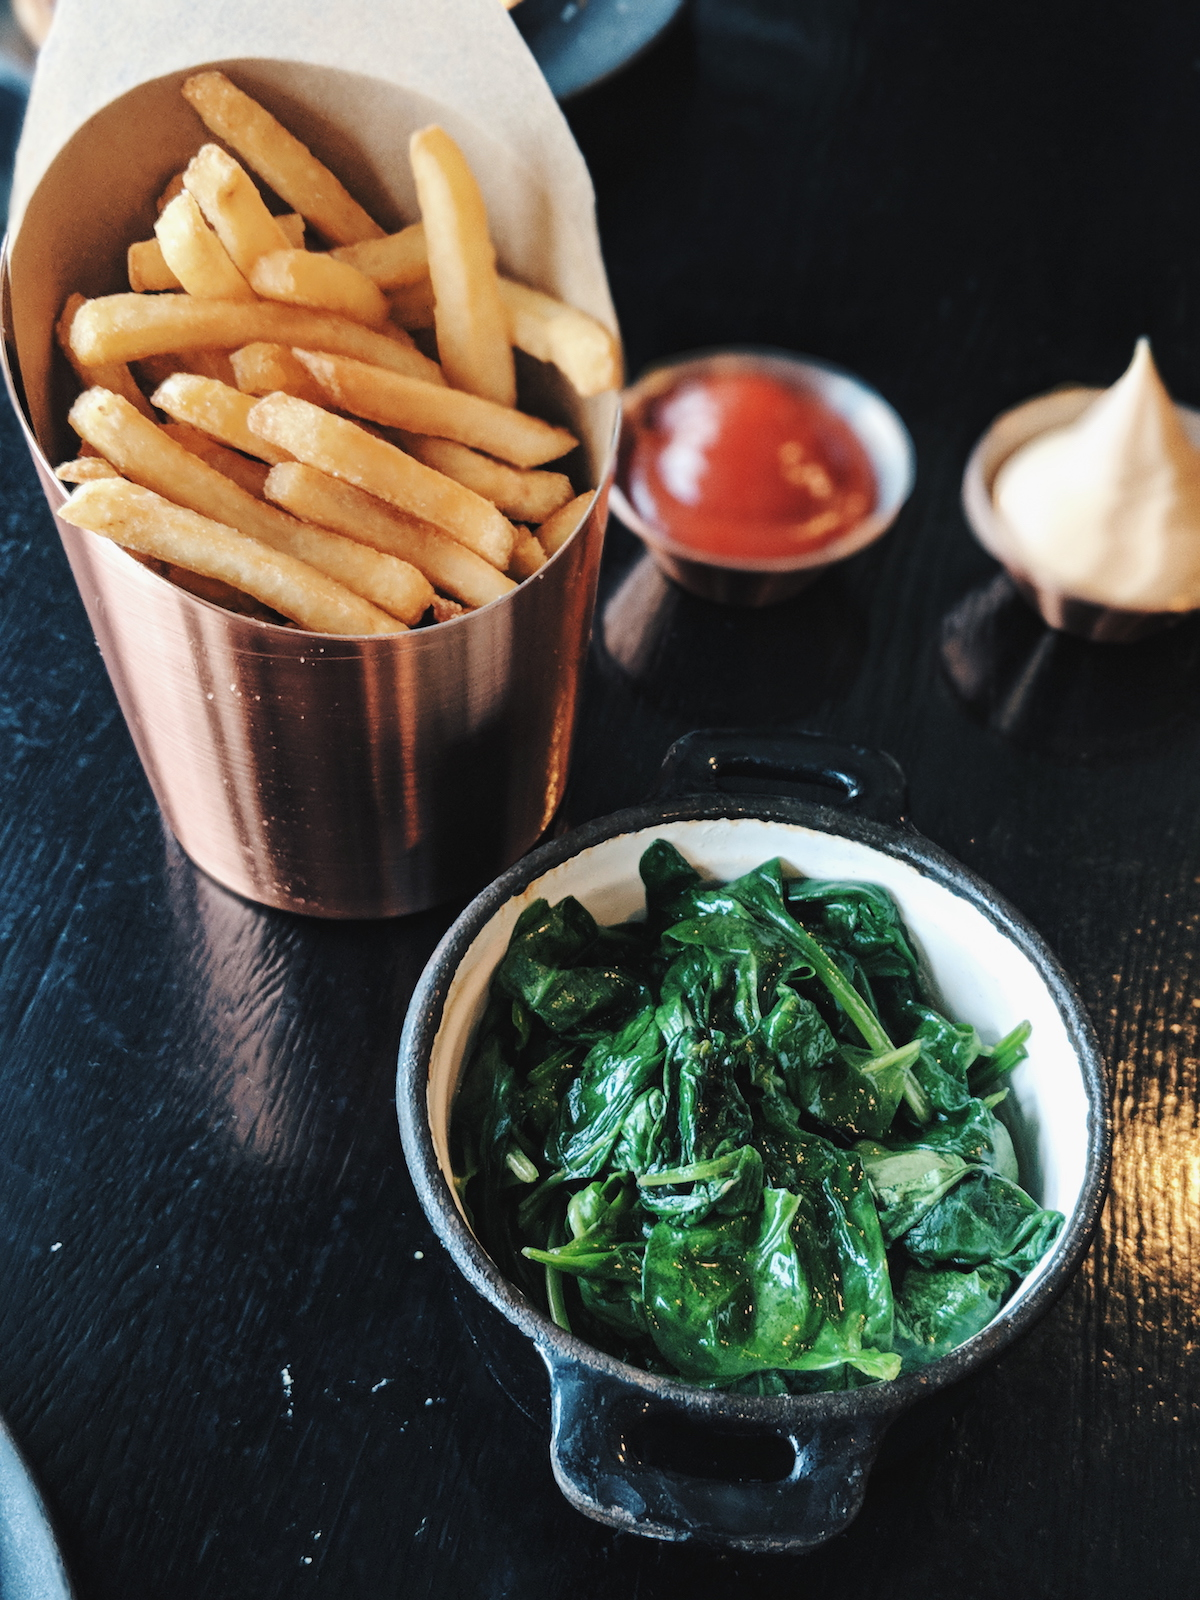 Spinach fried with shallot butter and fries.